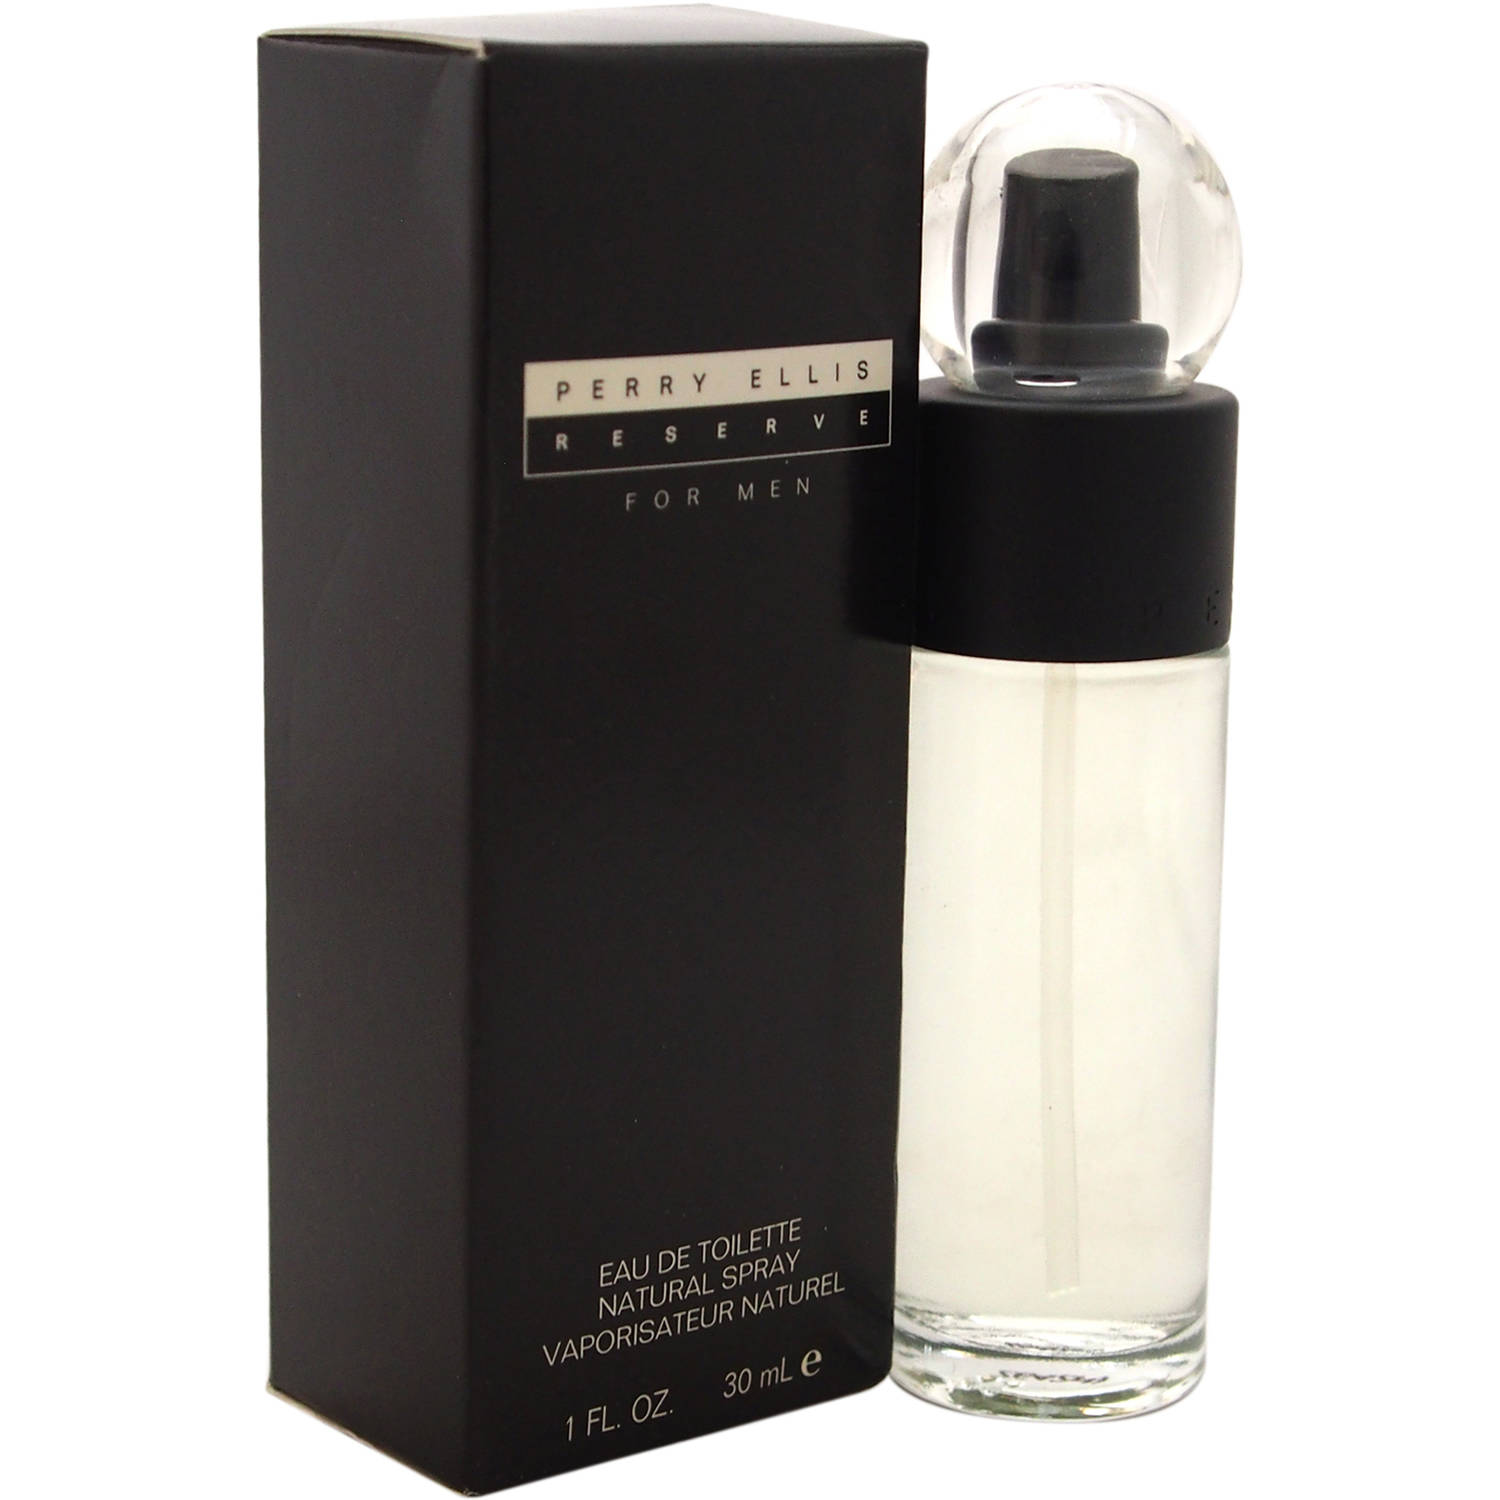 Perry Ellis Reserve for Men Eau de Toilette Spray, 1 oz